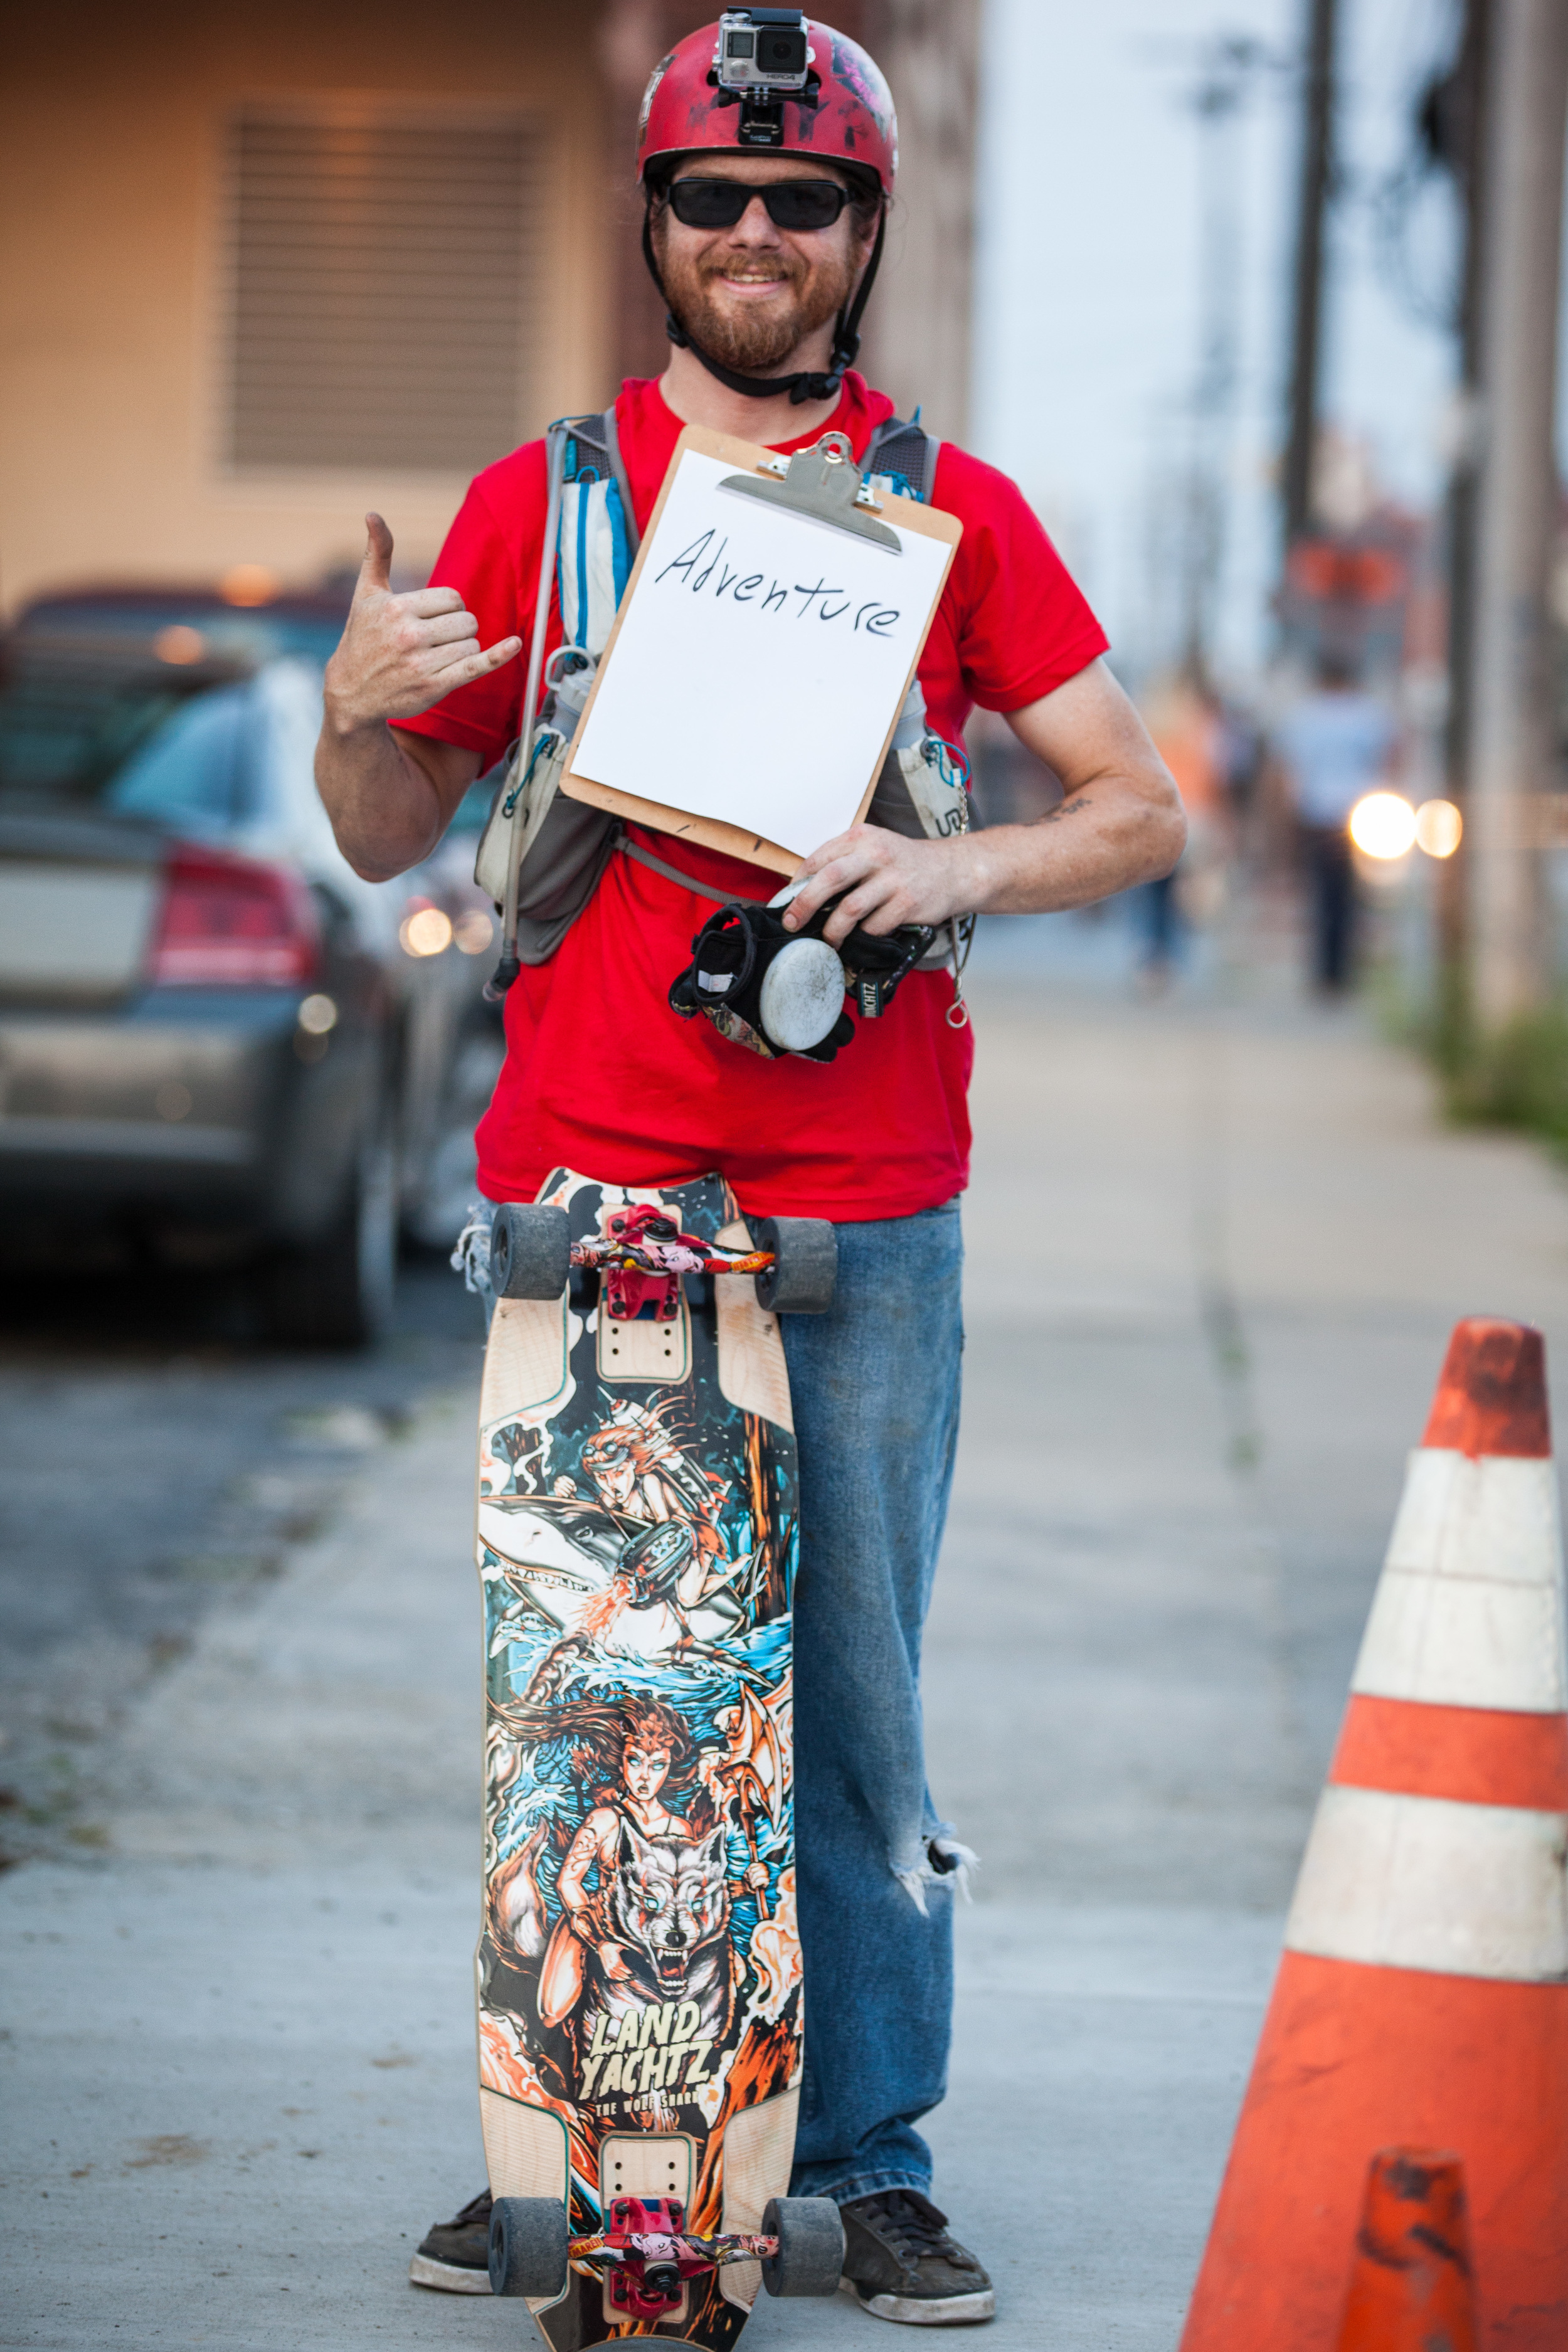 Man holding a sign that says adventure while a skateboard leans against him.